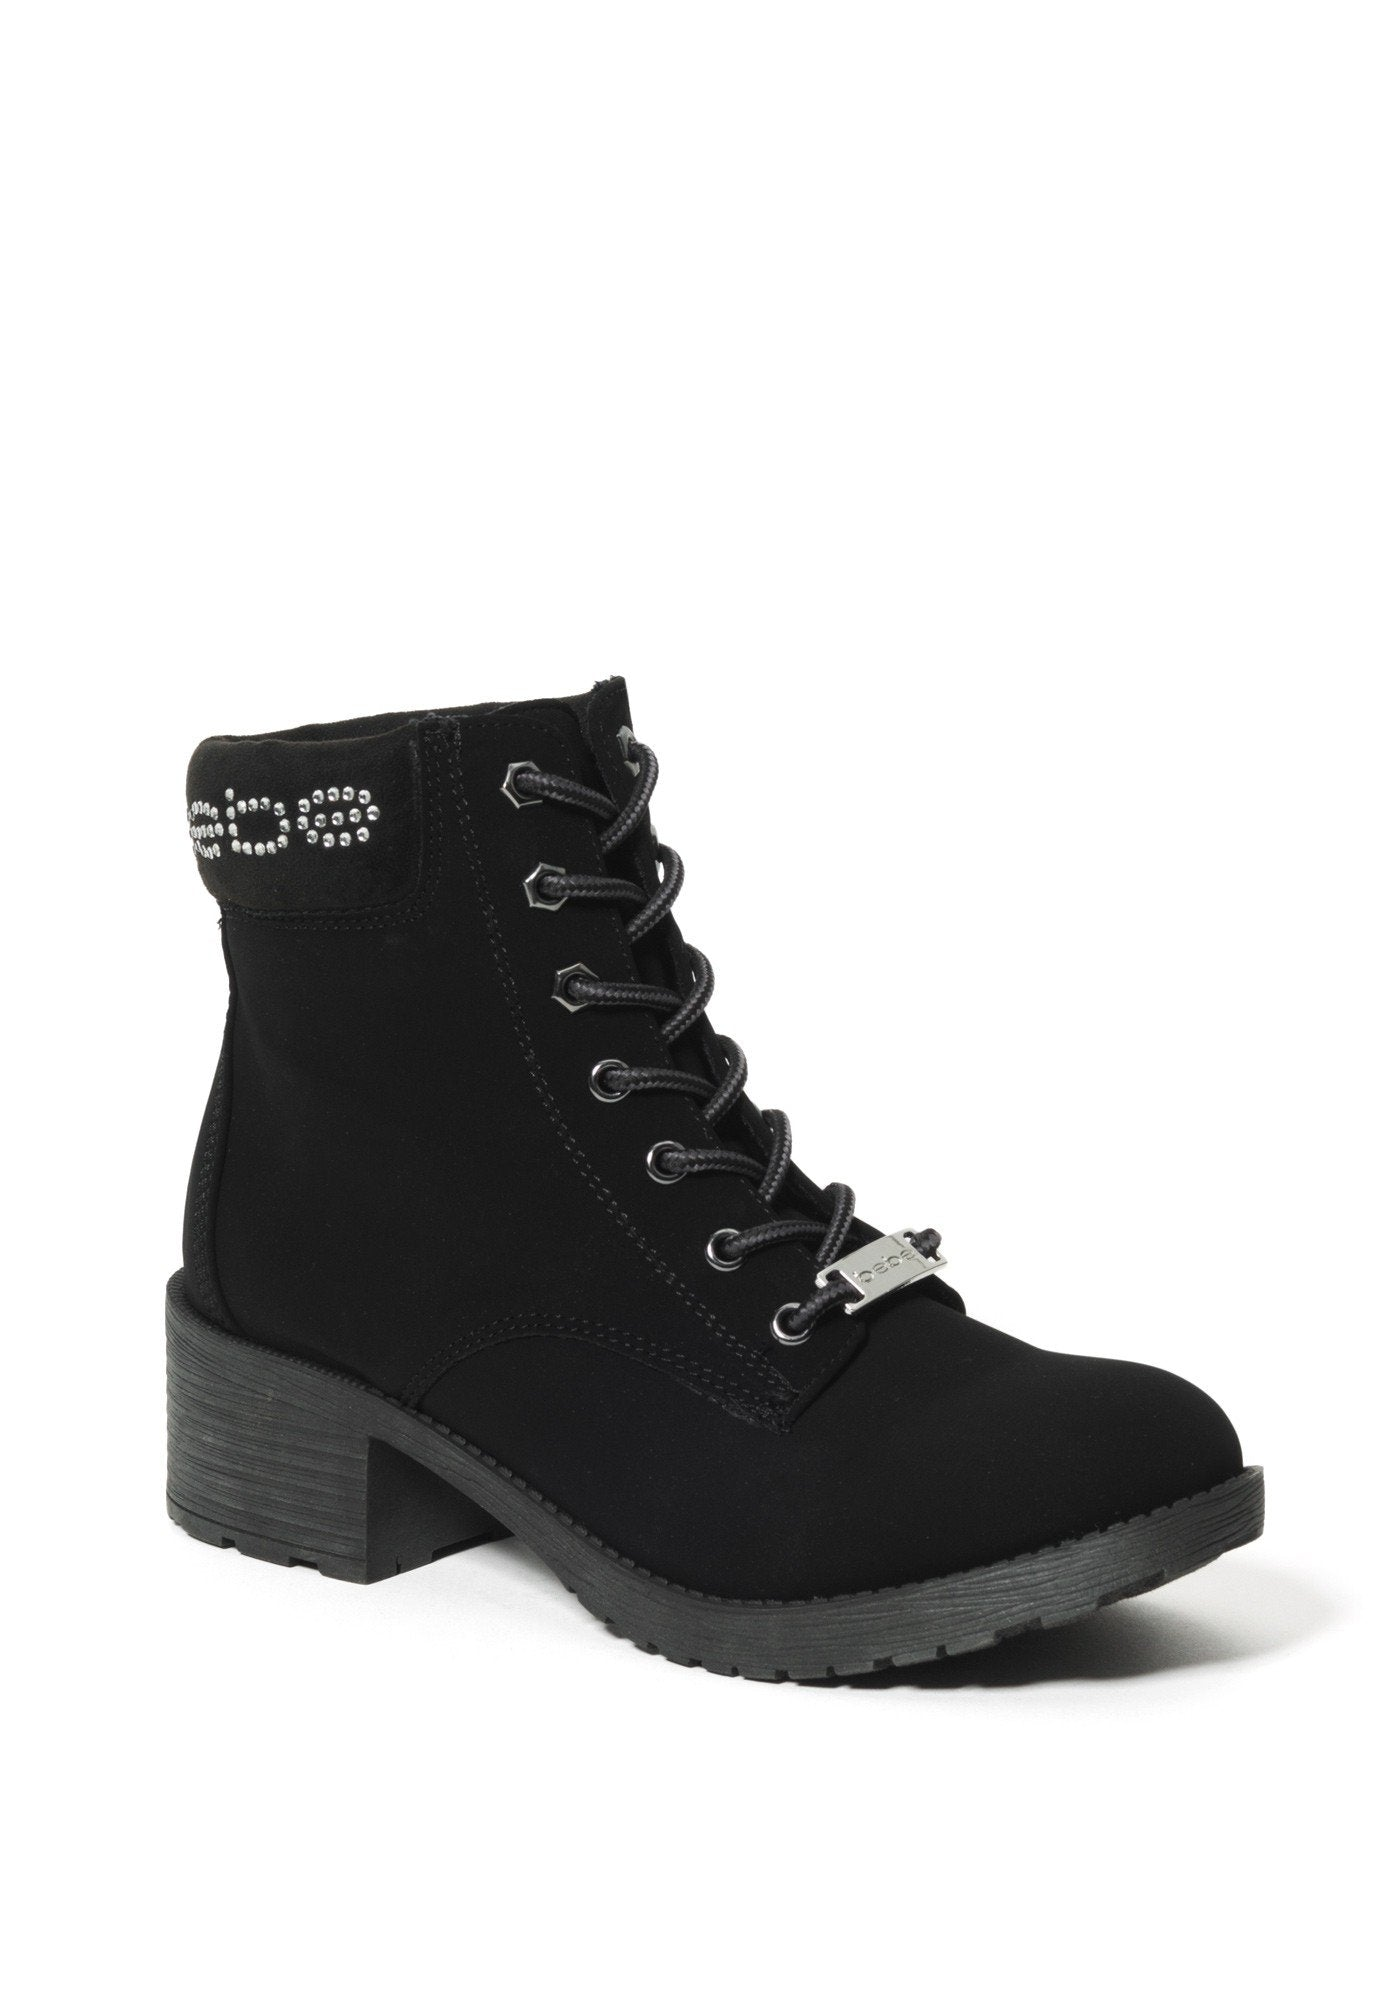 Bebe Women's Shaylie Logo Ankle Boots, Size 6 in Black Synthetic